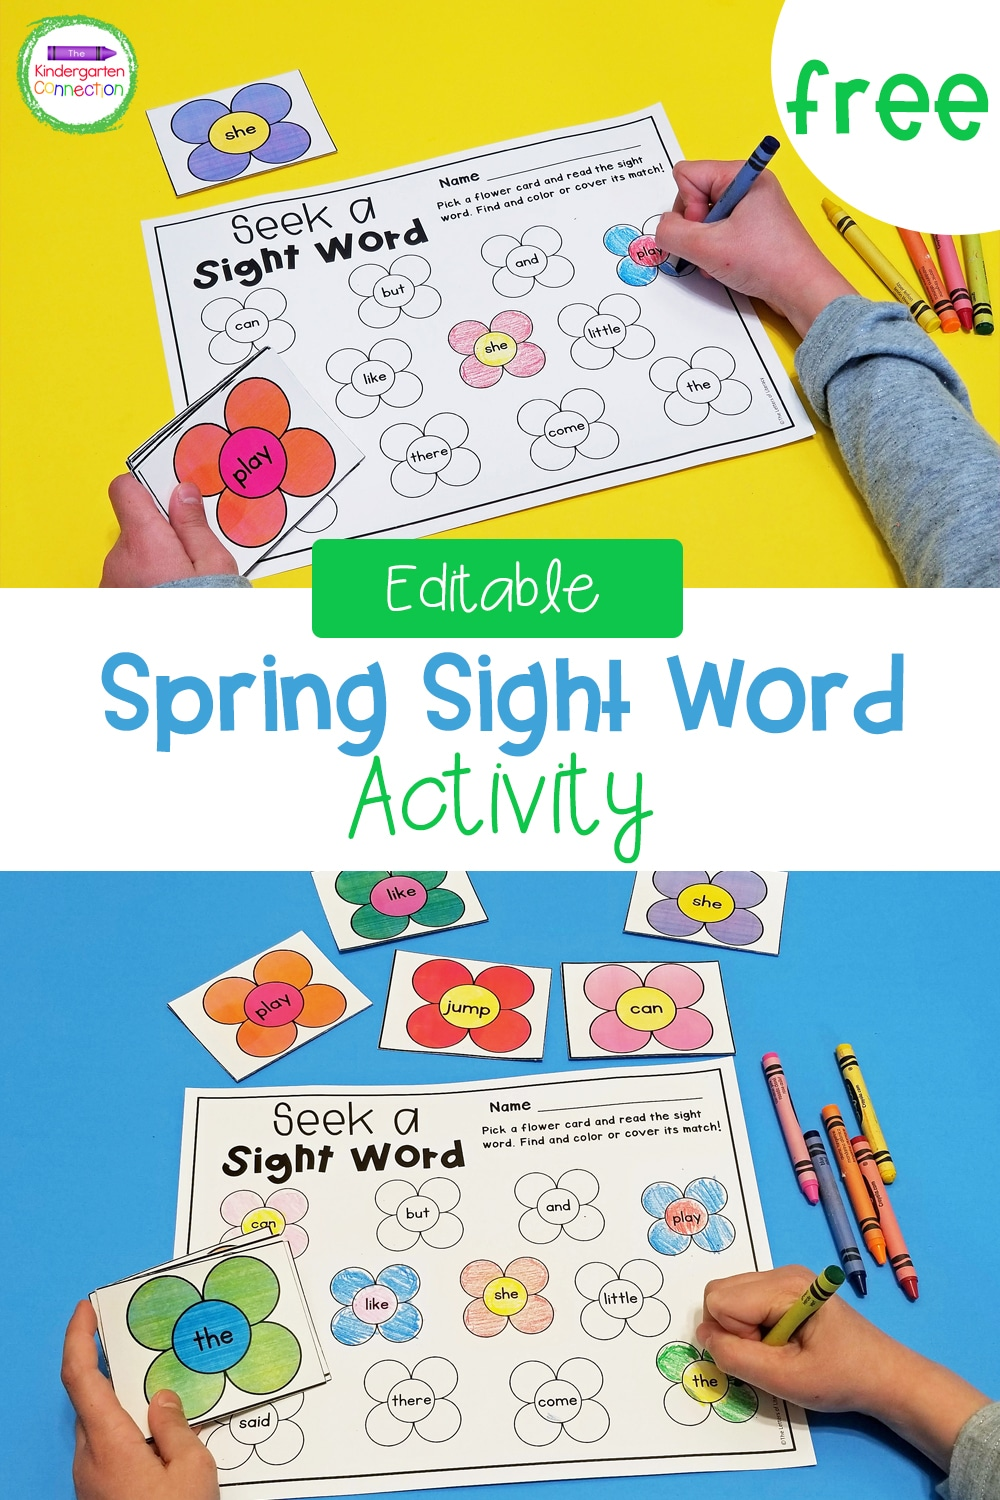 This FREE Editable Spring Sight Word Activity for Kindergarten is perfect for a literacy center, partner work, or as an independent activity!